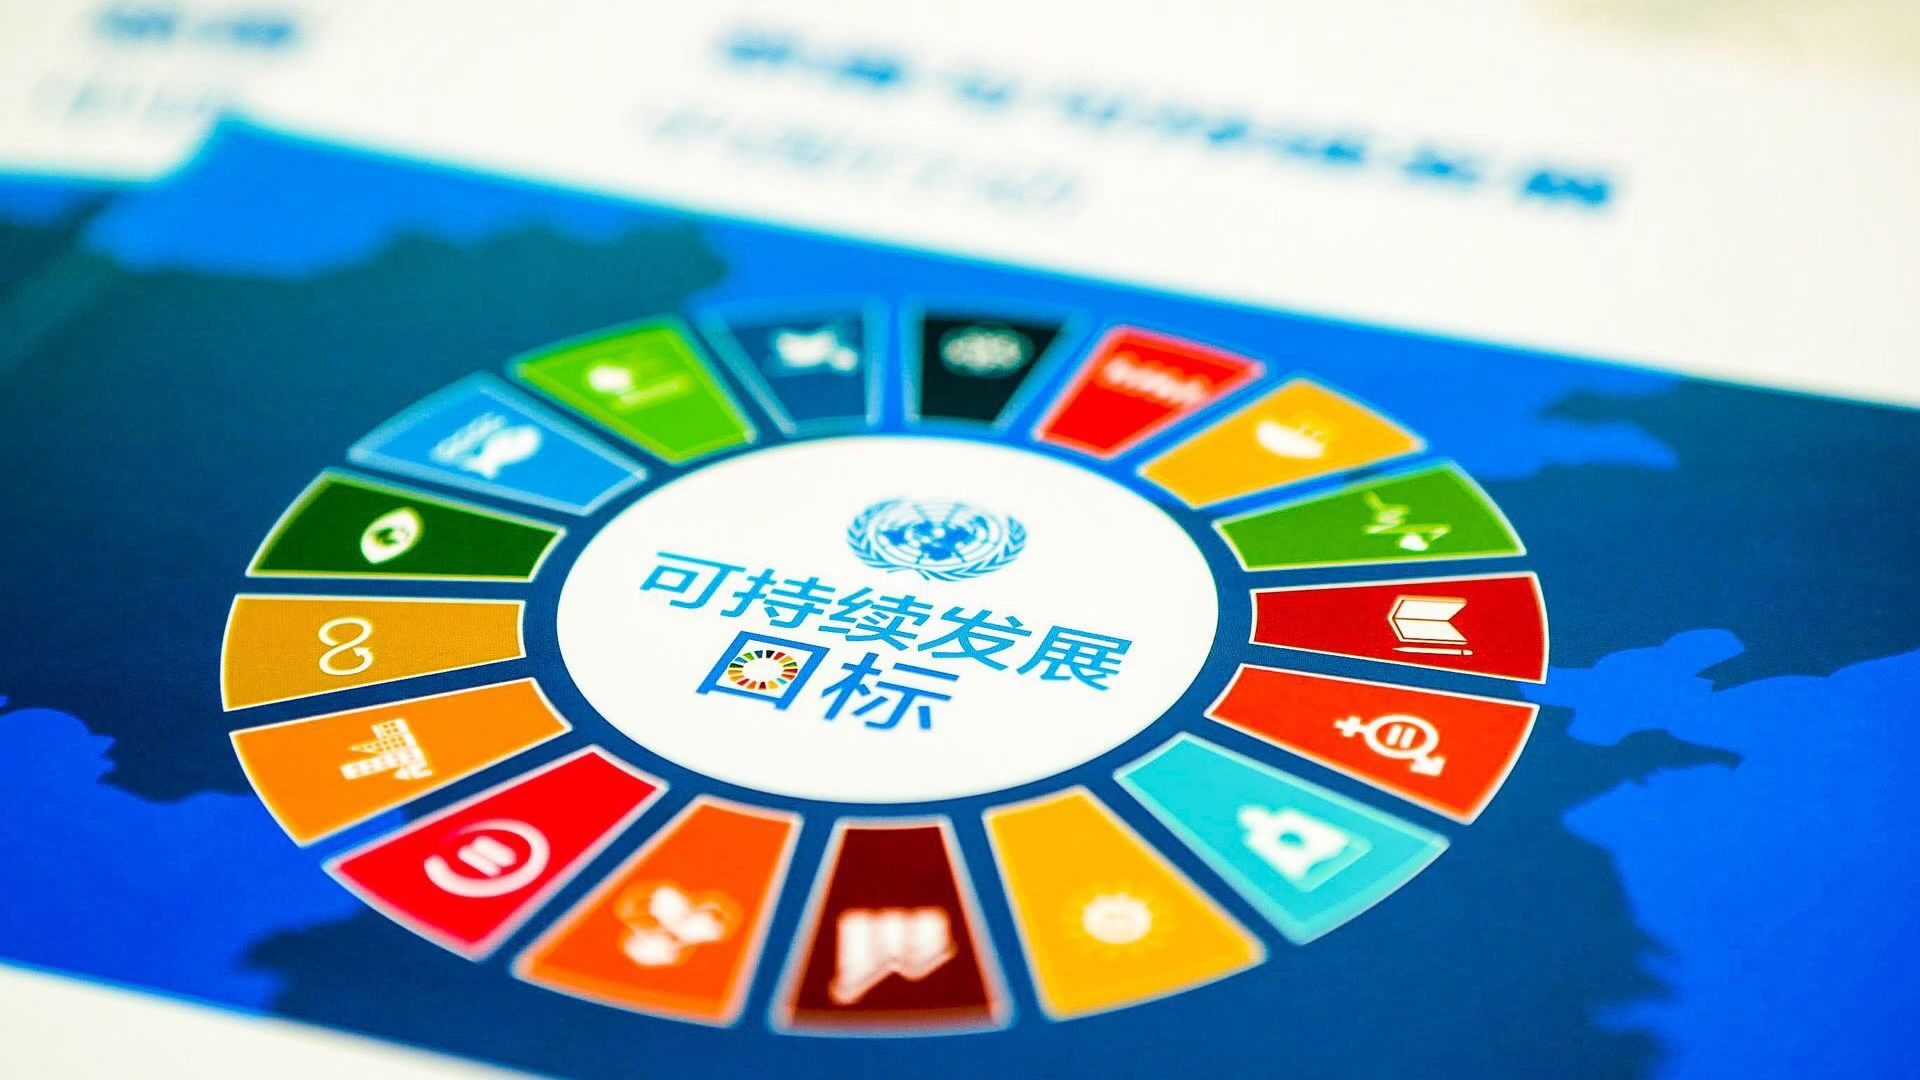 UN report calls for change in direction to achieve SDGs